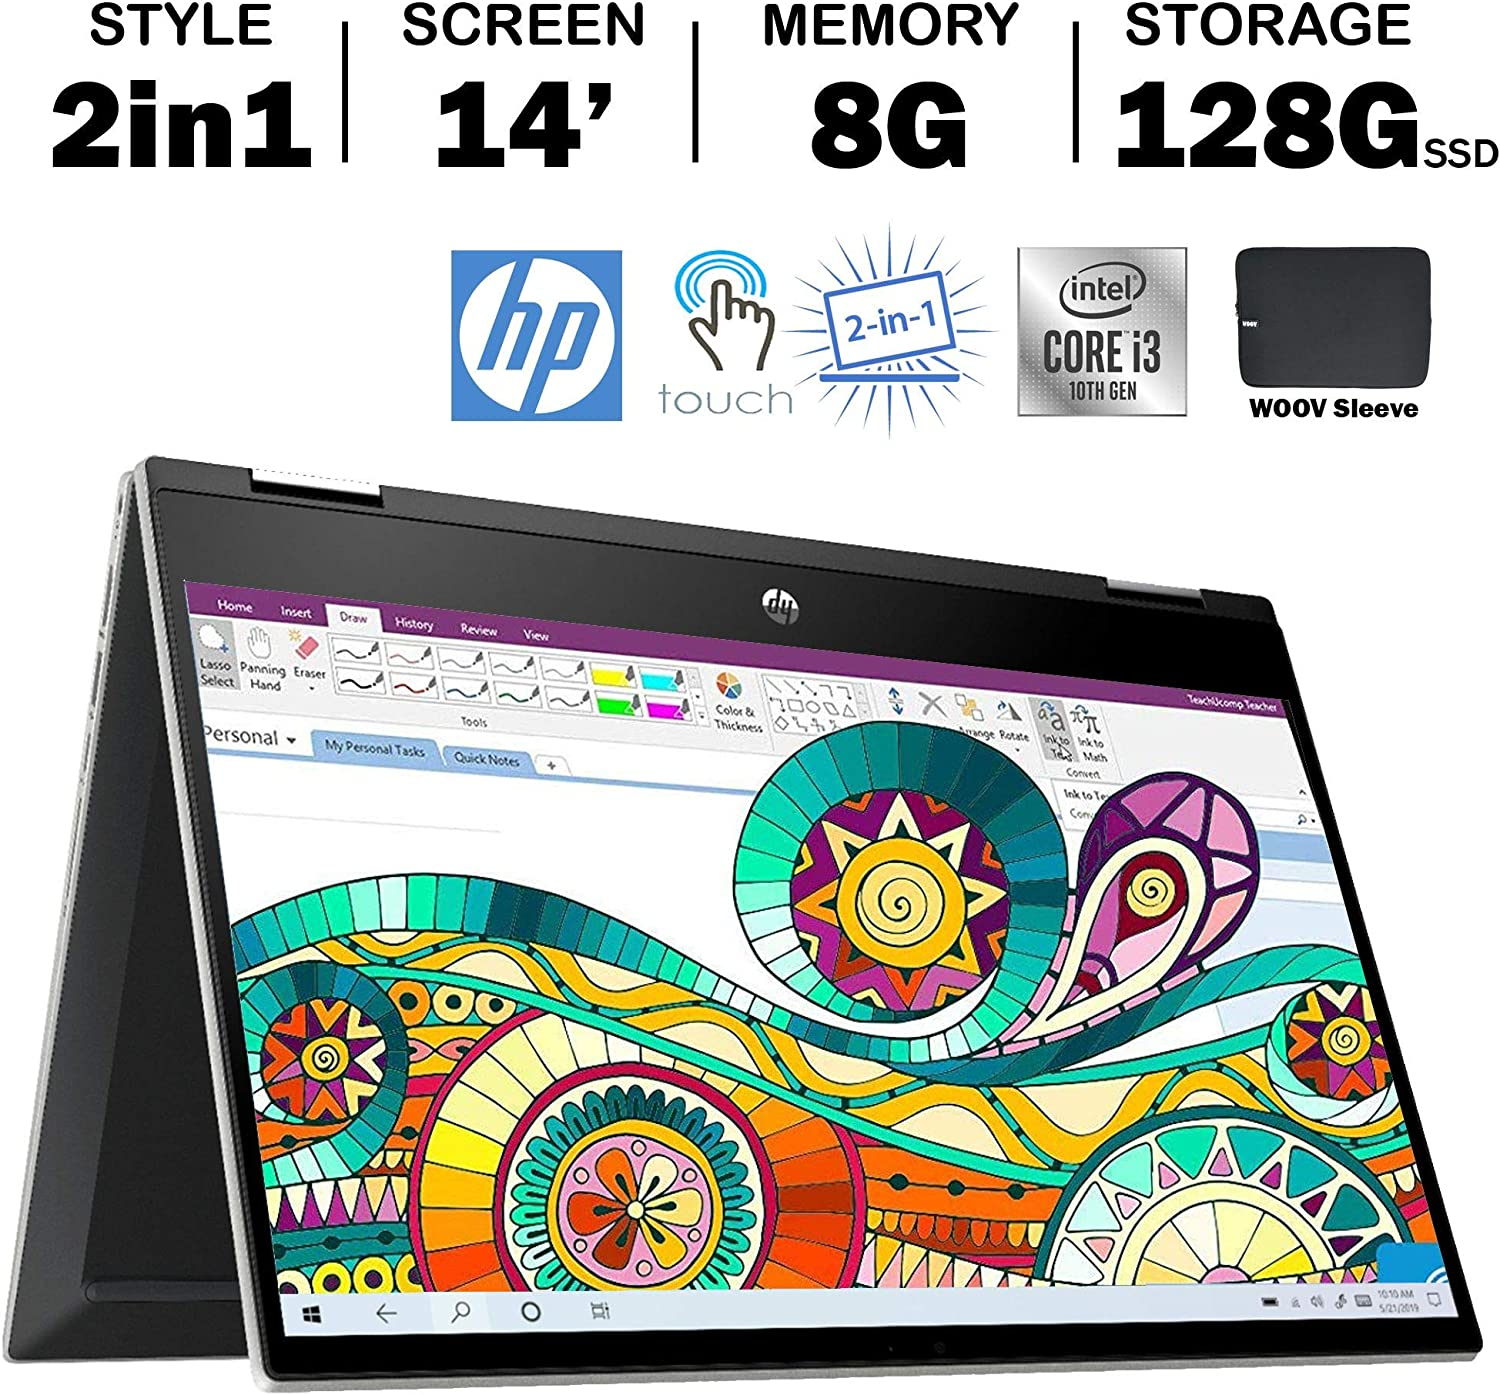 Hp Pavilion X360 14 Inch Student and Business 2-in-1 Touchscreen Laptop with Woov Sleeve, Intel Dual-core i3-1005G1 (Beat i5-7200U), 8GB RAM, 256GB PCIe SSD, Wireless AC, Windows 10, Silver